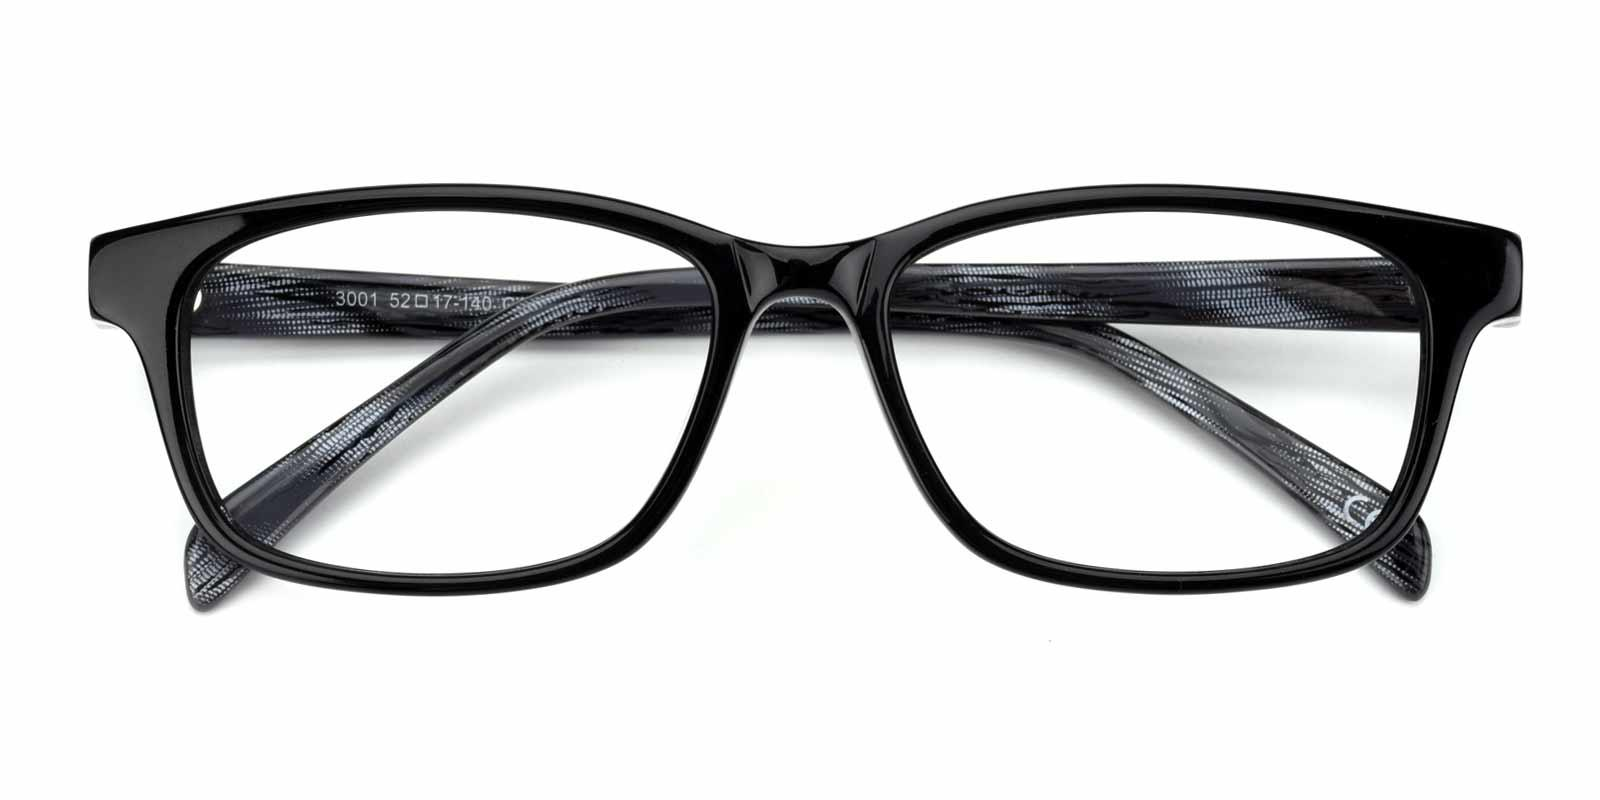 Carl-Black-Rectangle-Acetate-Eyeglasses-detail